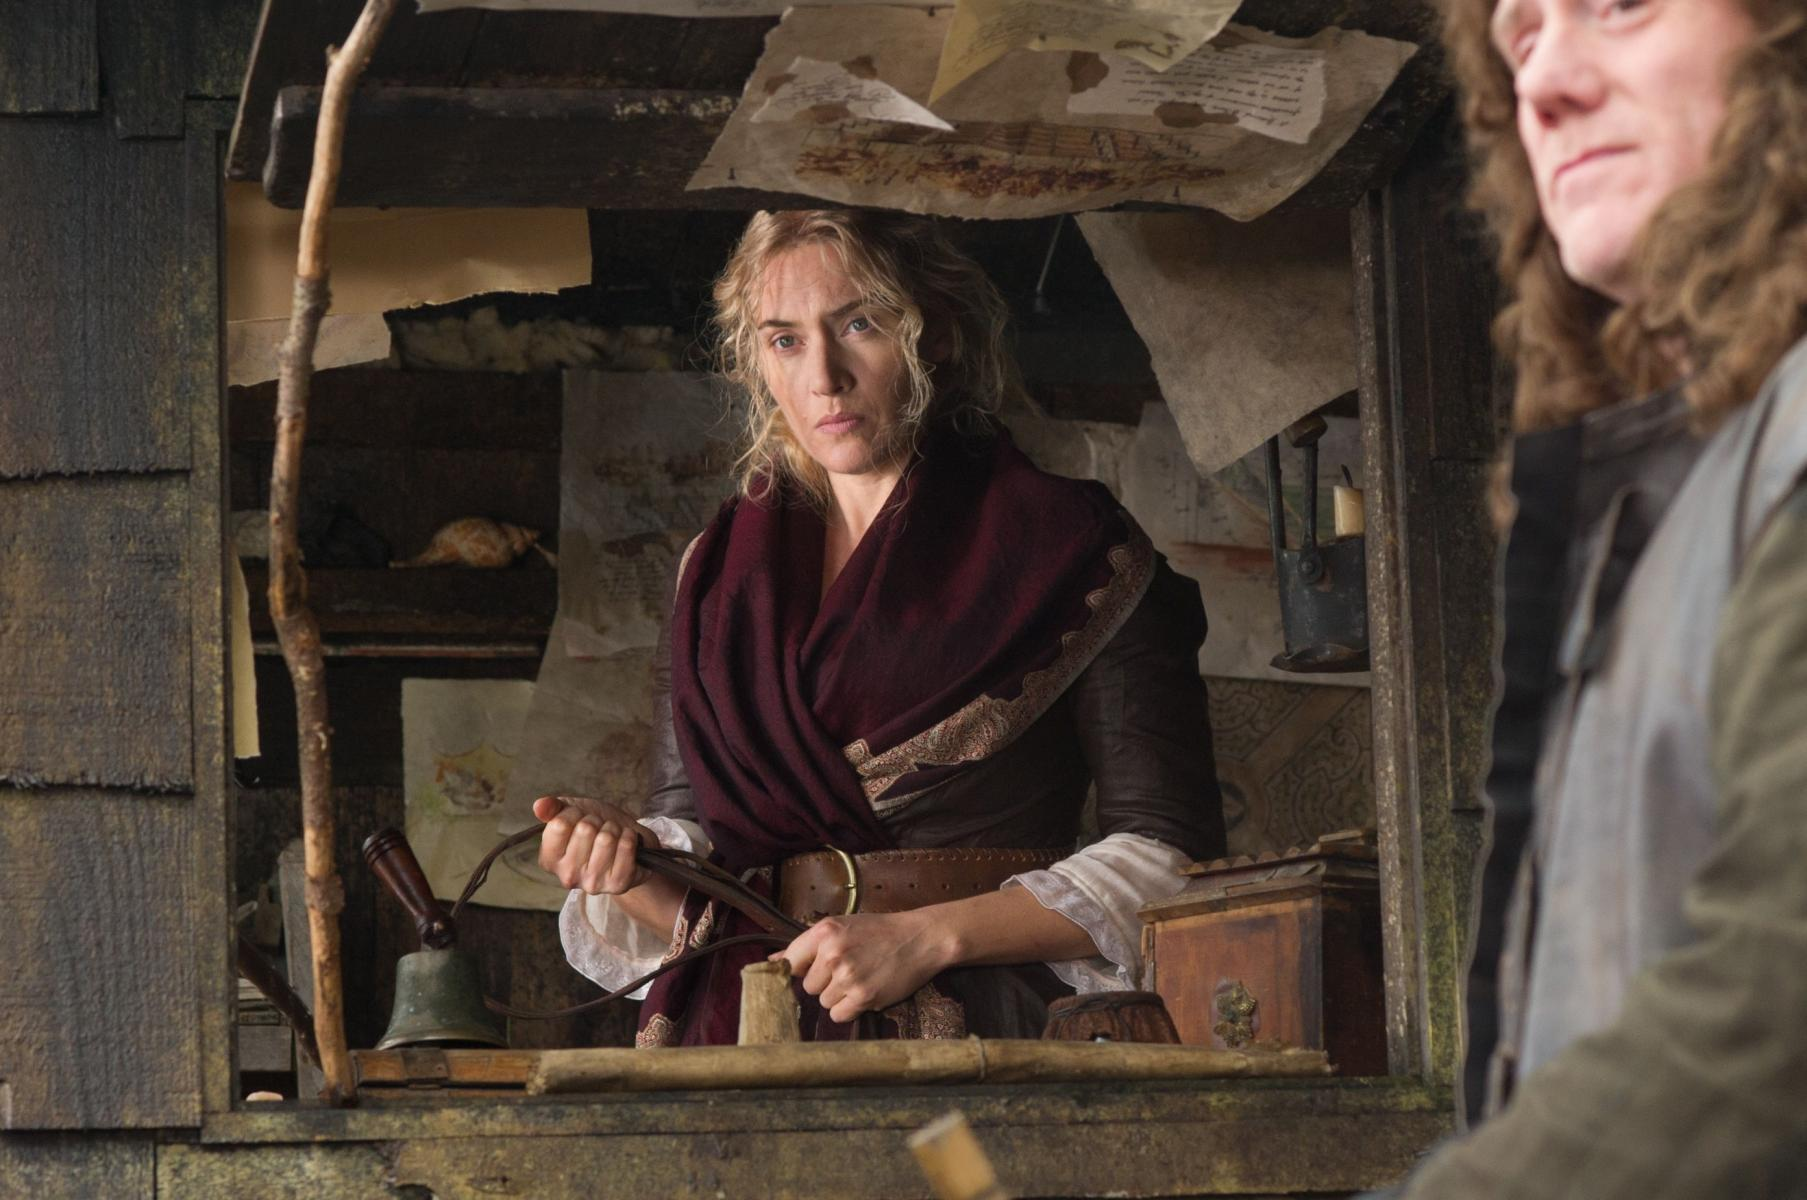 Image gallery for A Little Chaos - FilmAffinity